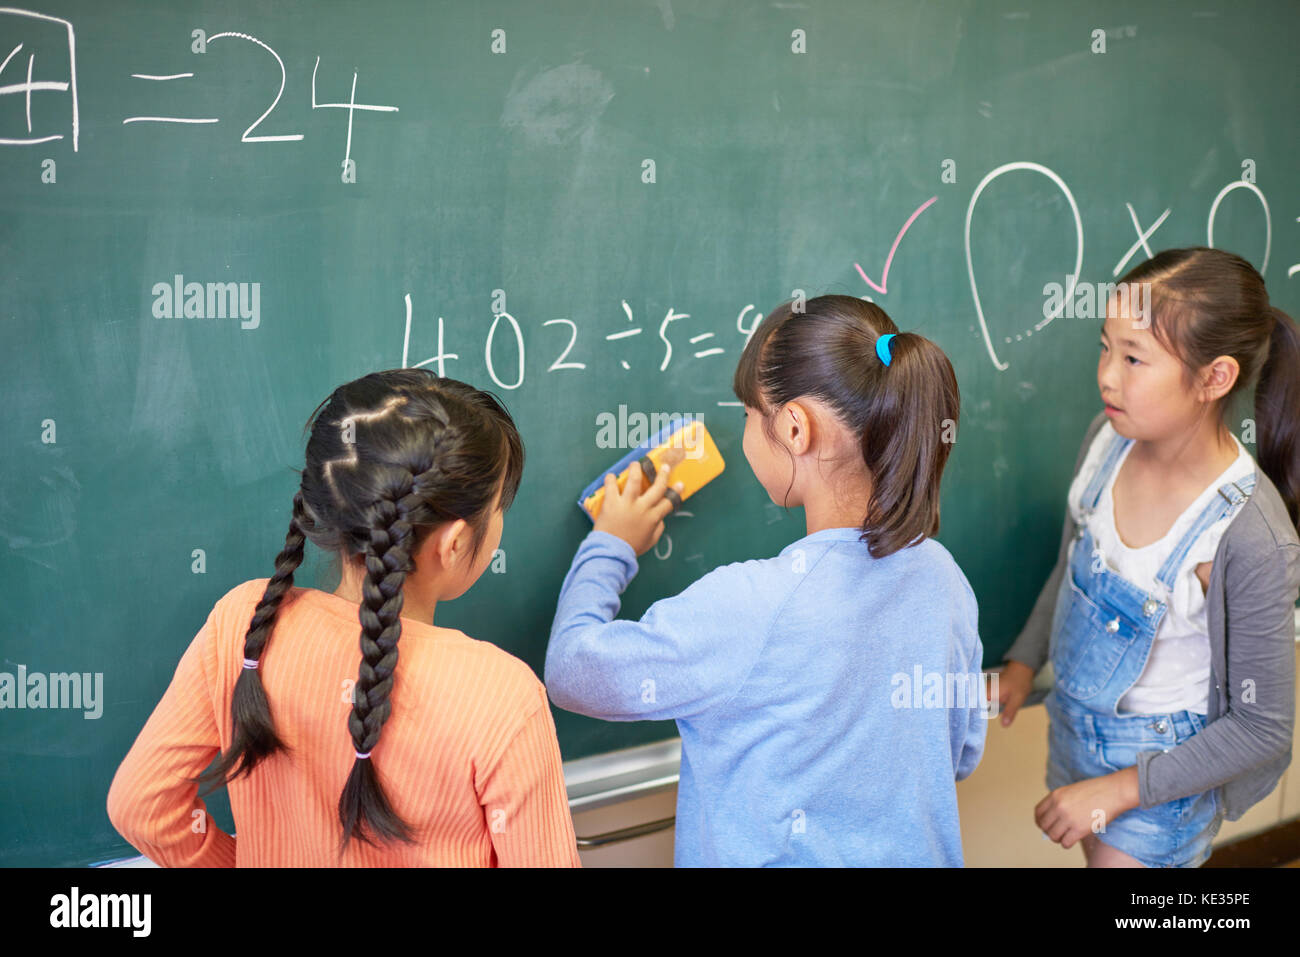 Japanese elementary school kids in the classroom - Stock Image